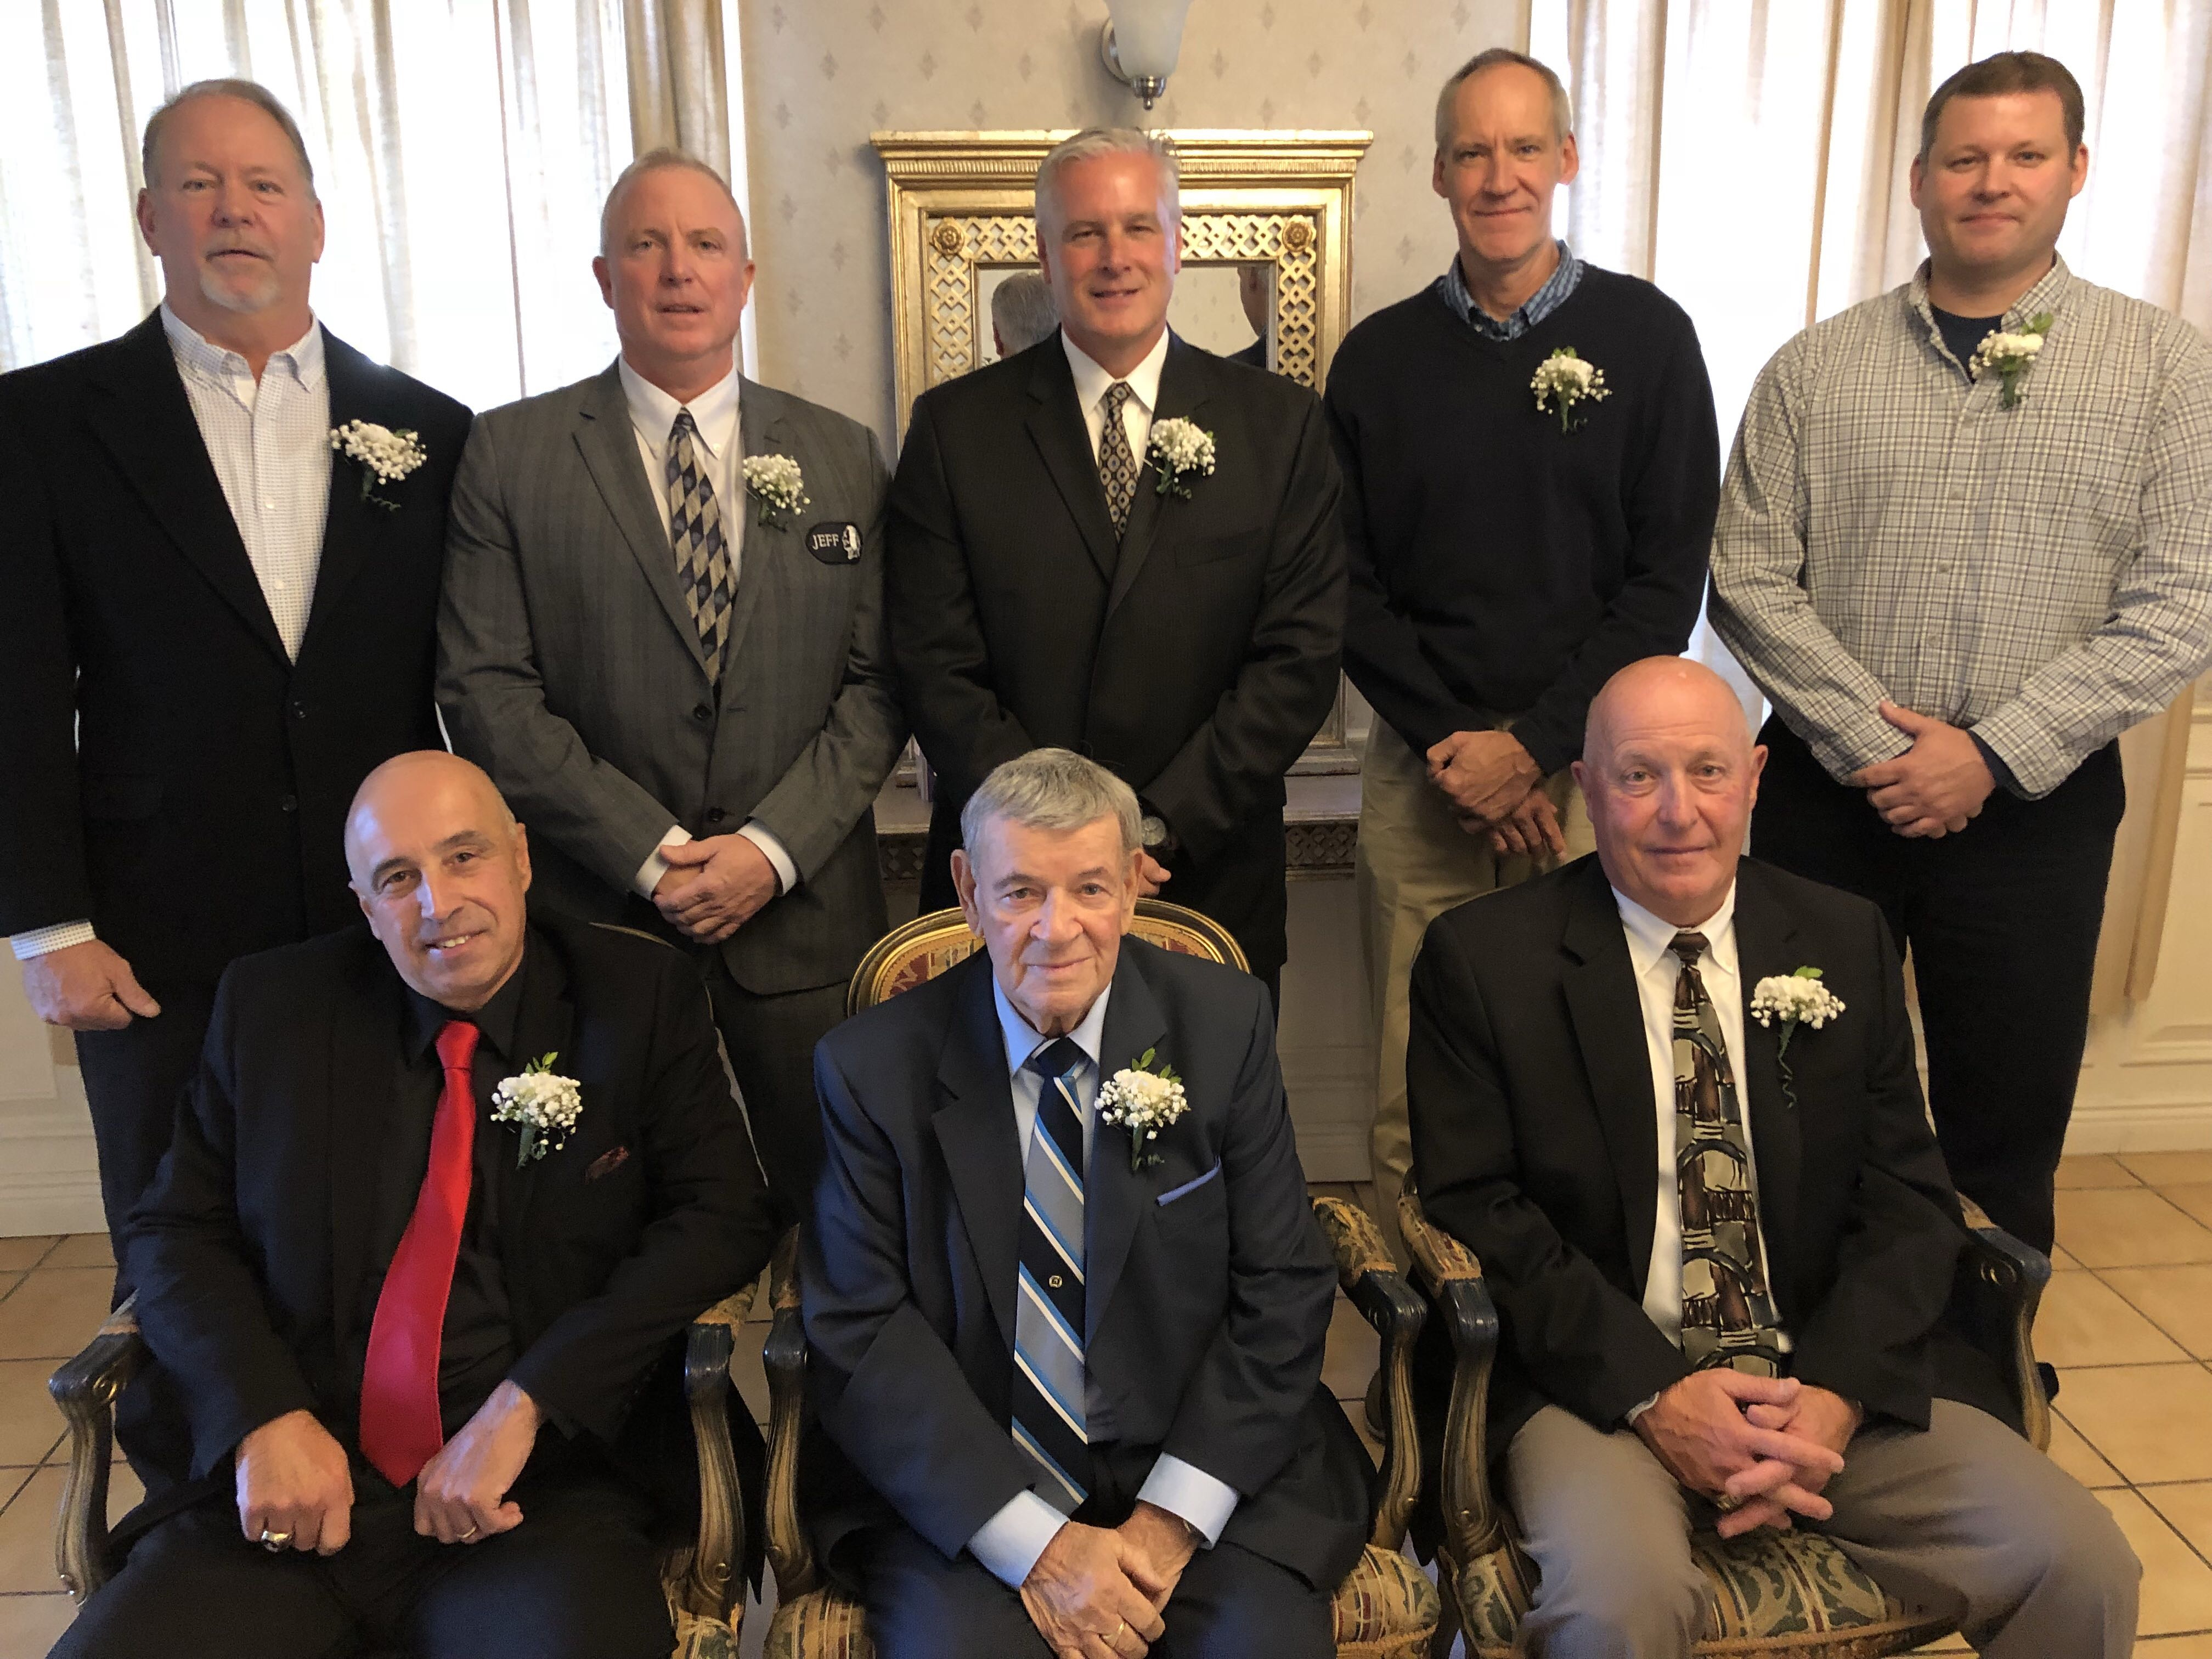 USA Softball of Connecticut inducted its newest Slow Pitch Hall of Fame members at its annual awards dinner on Sunday, October 21 at Costa Azzurra in Milford.Pictured above are (front, left to right):  Mark Berritto, Jerry DeJulia and Paul Mengold (rear, left to right) Dennis Appel, Keith Anderson, Ed Muzyka, Sandy Osiecki and Daryl Osiecki (accepting for Frank Osiecki). Not pictured is Barbara Startup